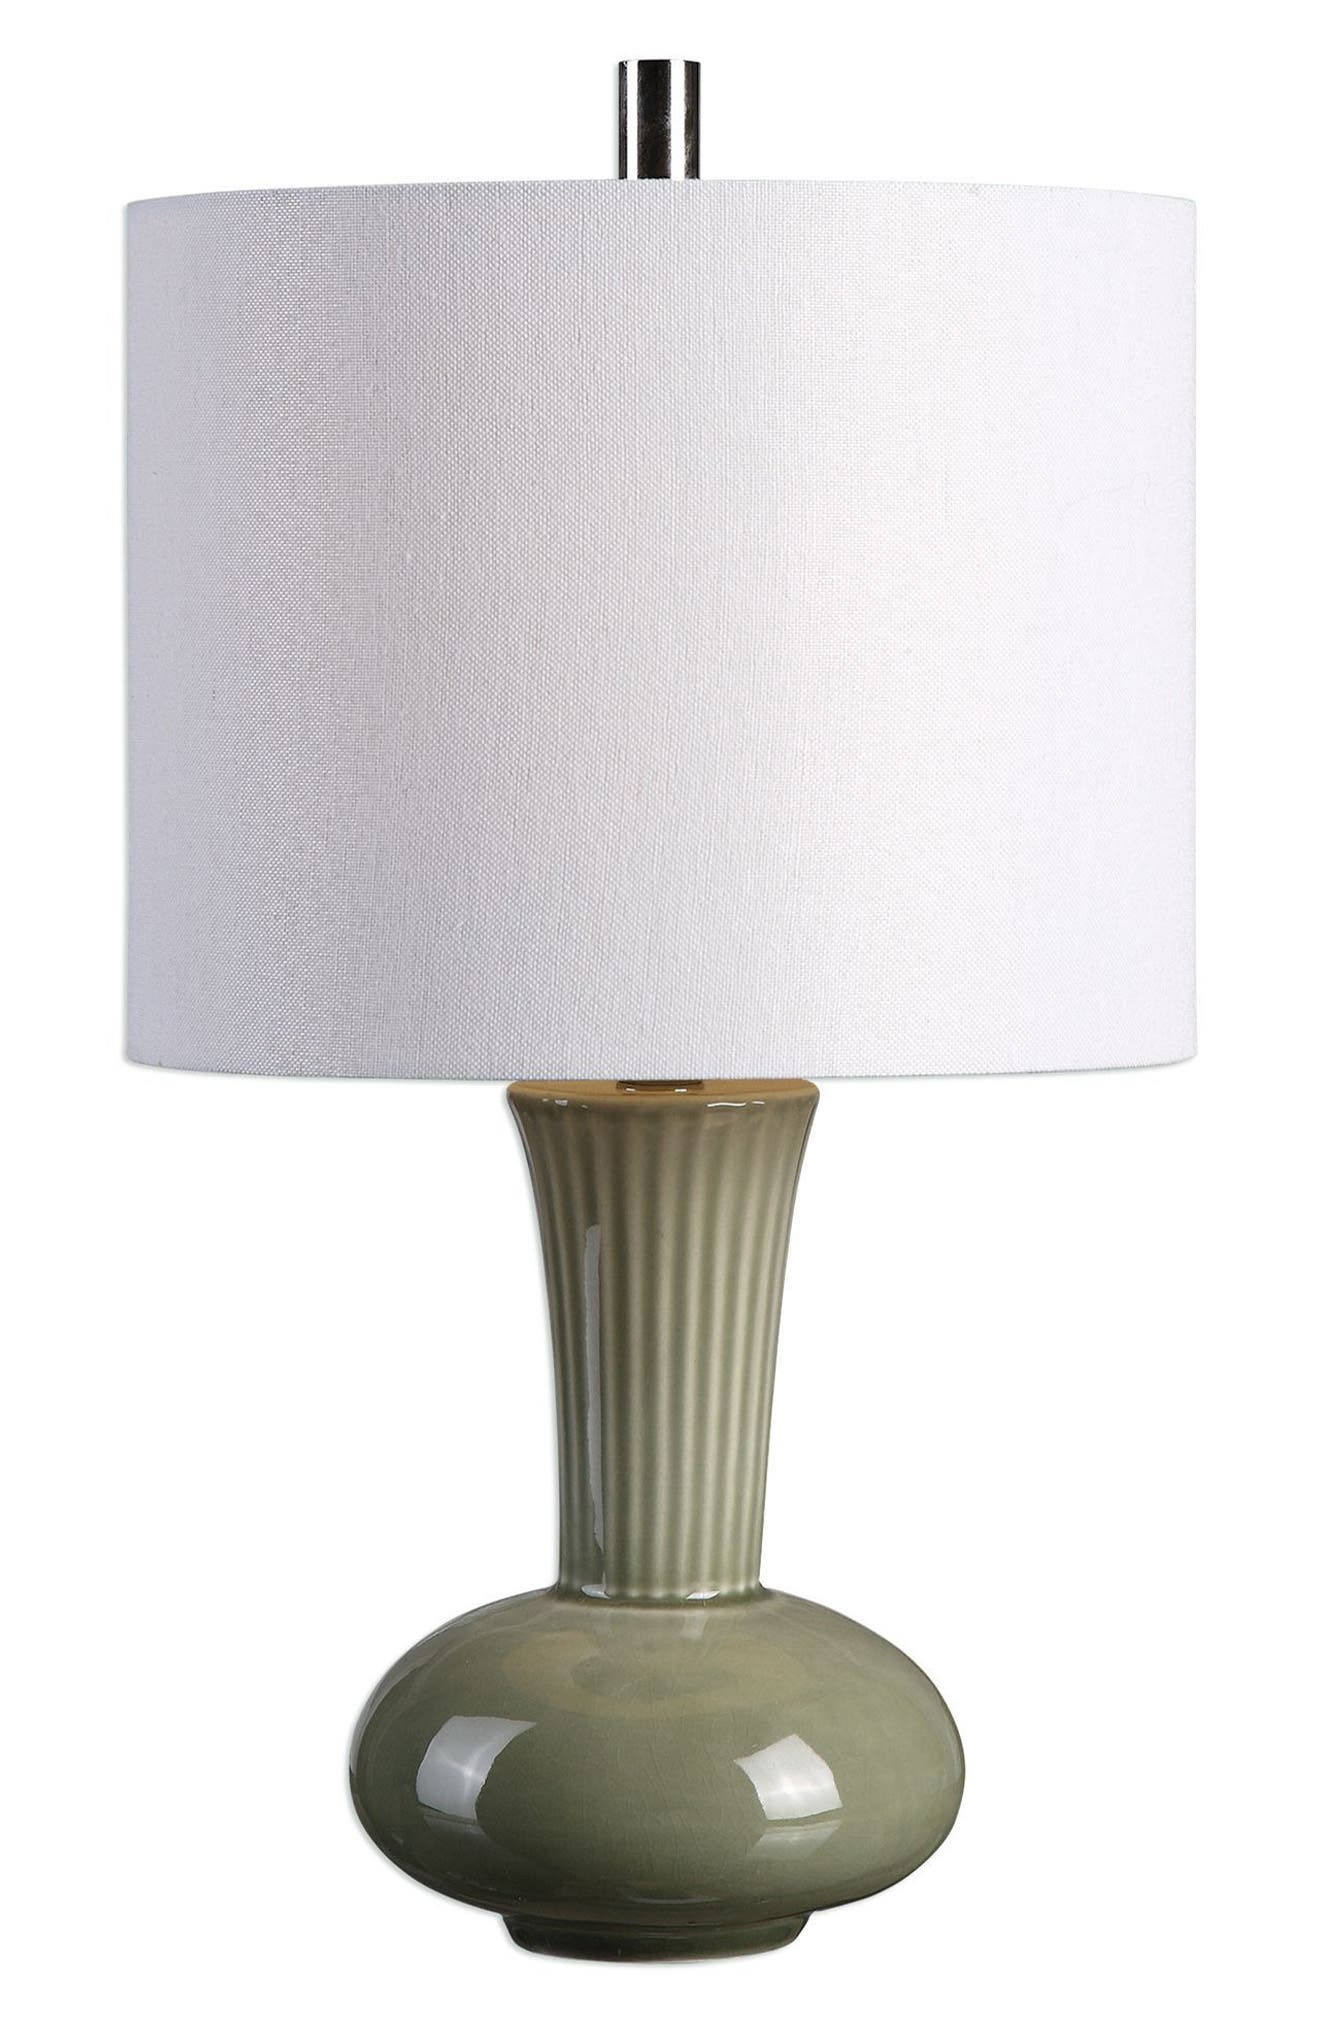 Alternate Image 1 Selected - Uttermost Luray Table Lamp